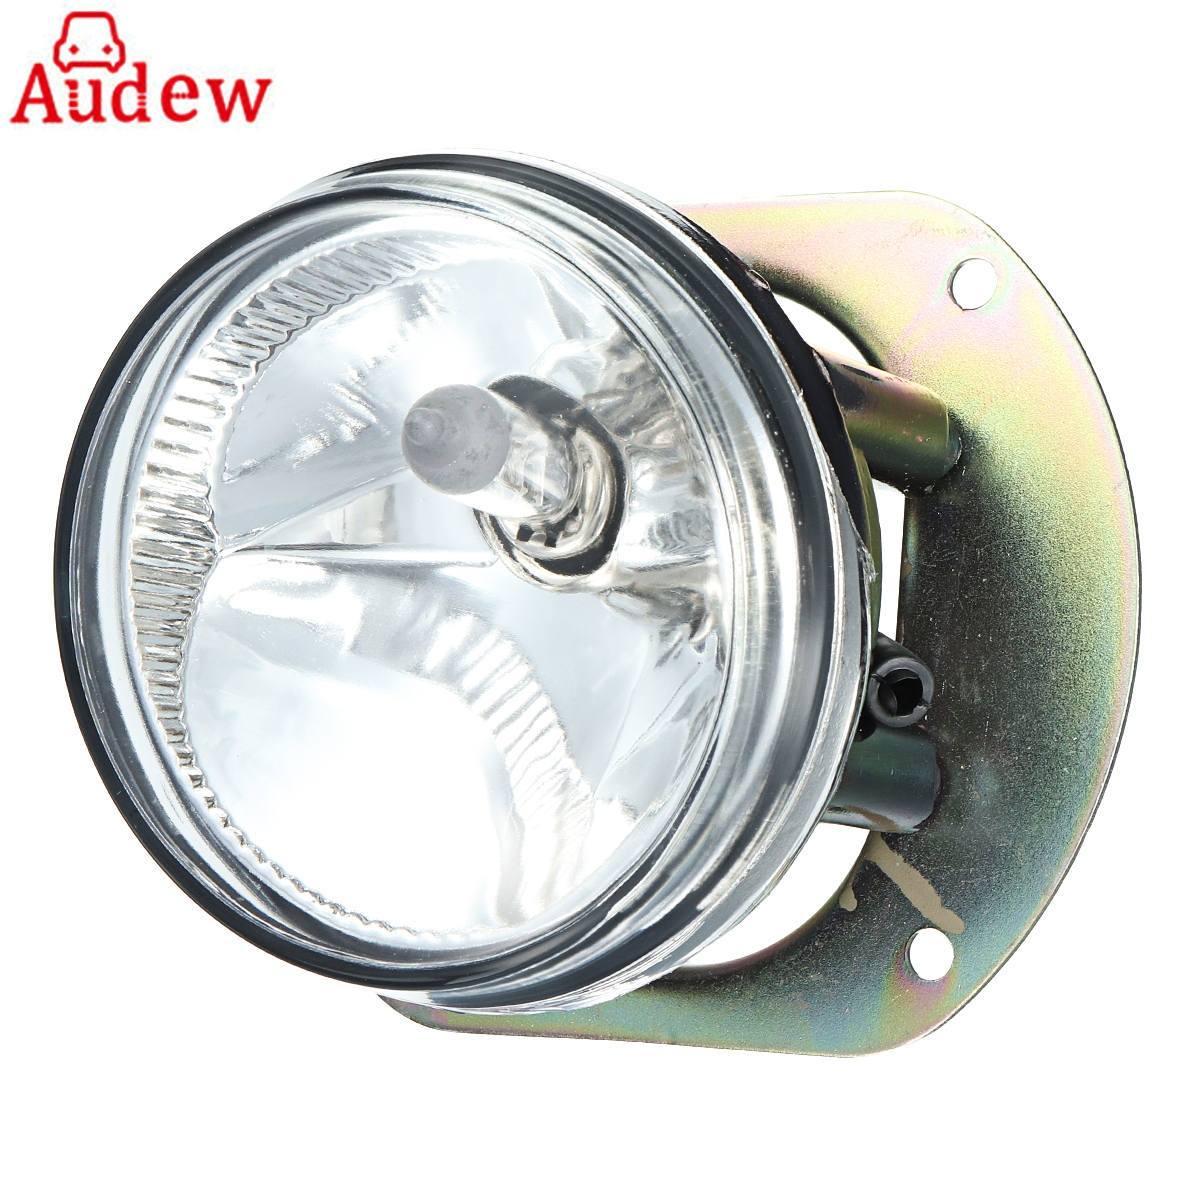 1Pcs Car Front Fog Light Left/Right Bumper Lamp For Mercedes-Benz W164 R171 W204 C300 CL550